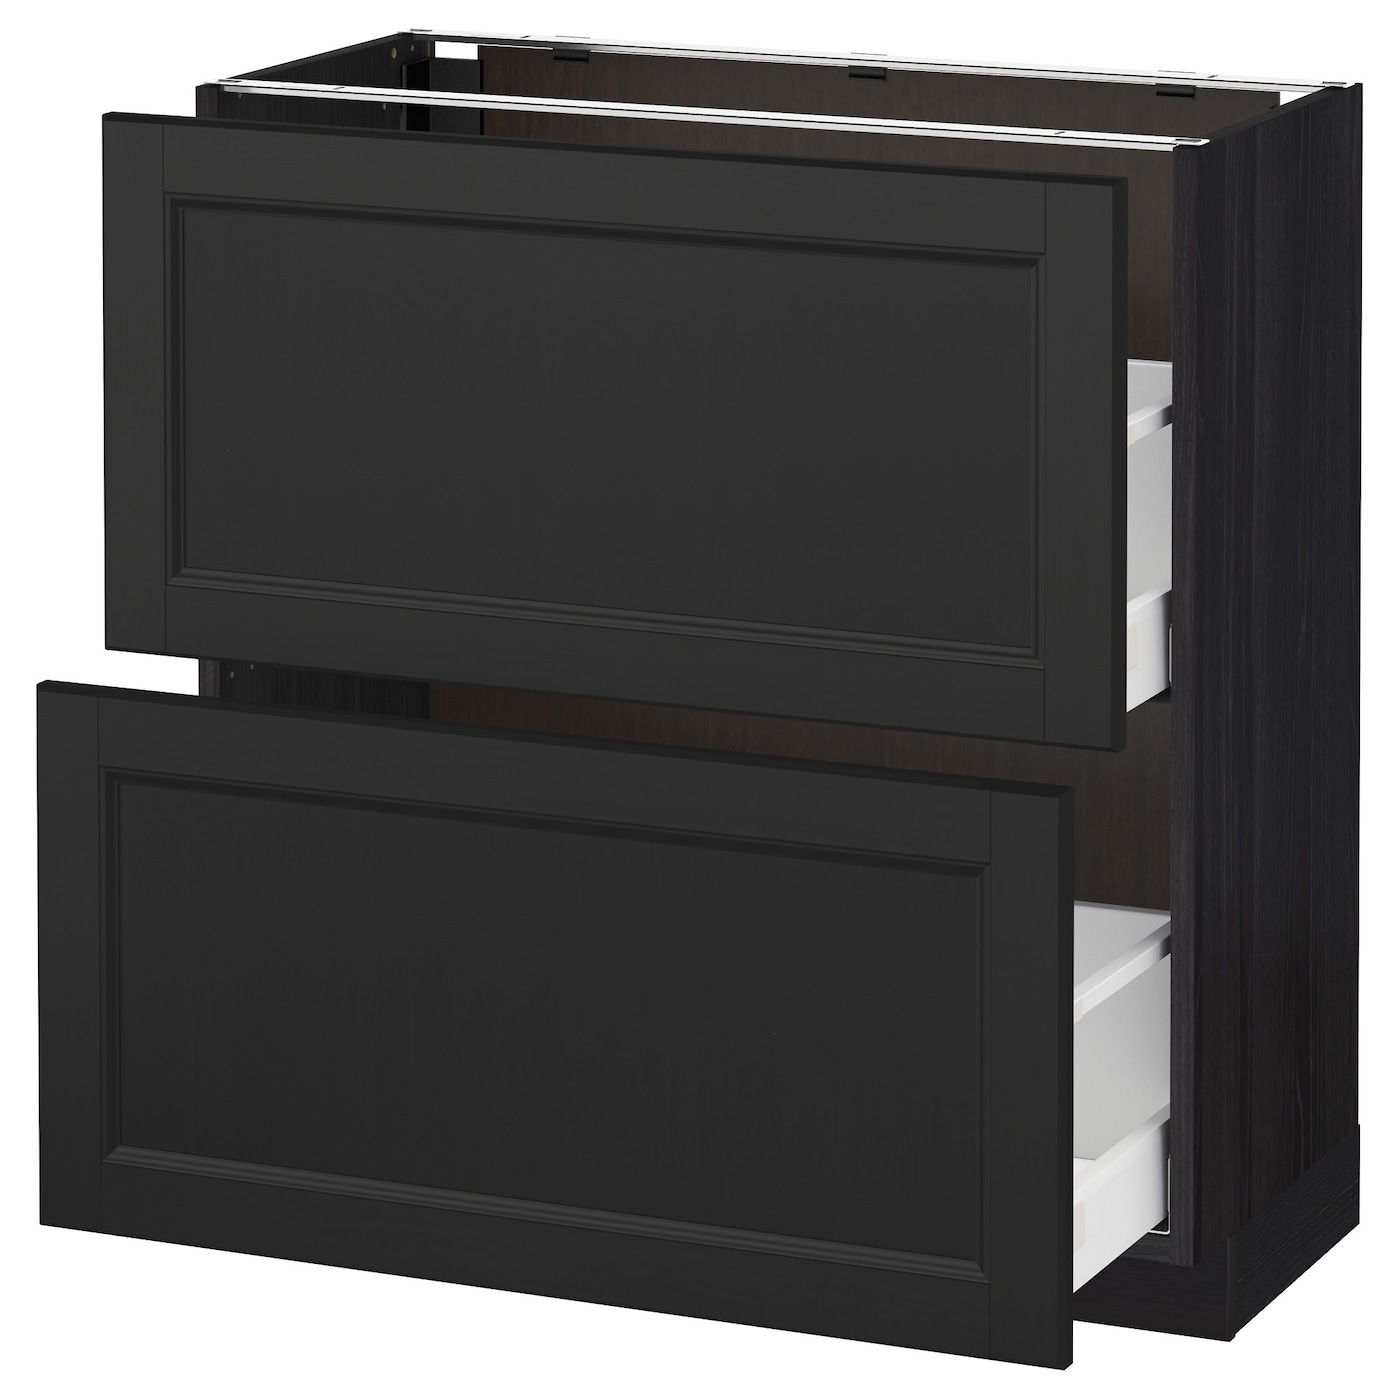 Ikea Kitchen Laxarby: METOD/MAXIMERA Base Cabinet With 2 Drawers Black/laxarby